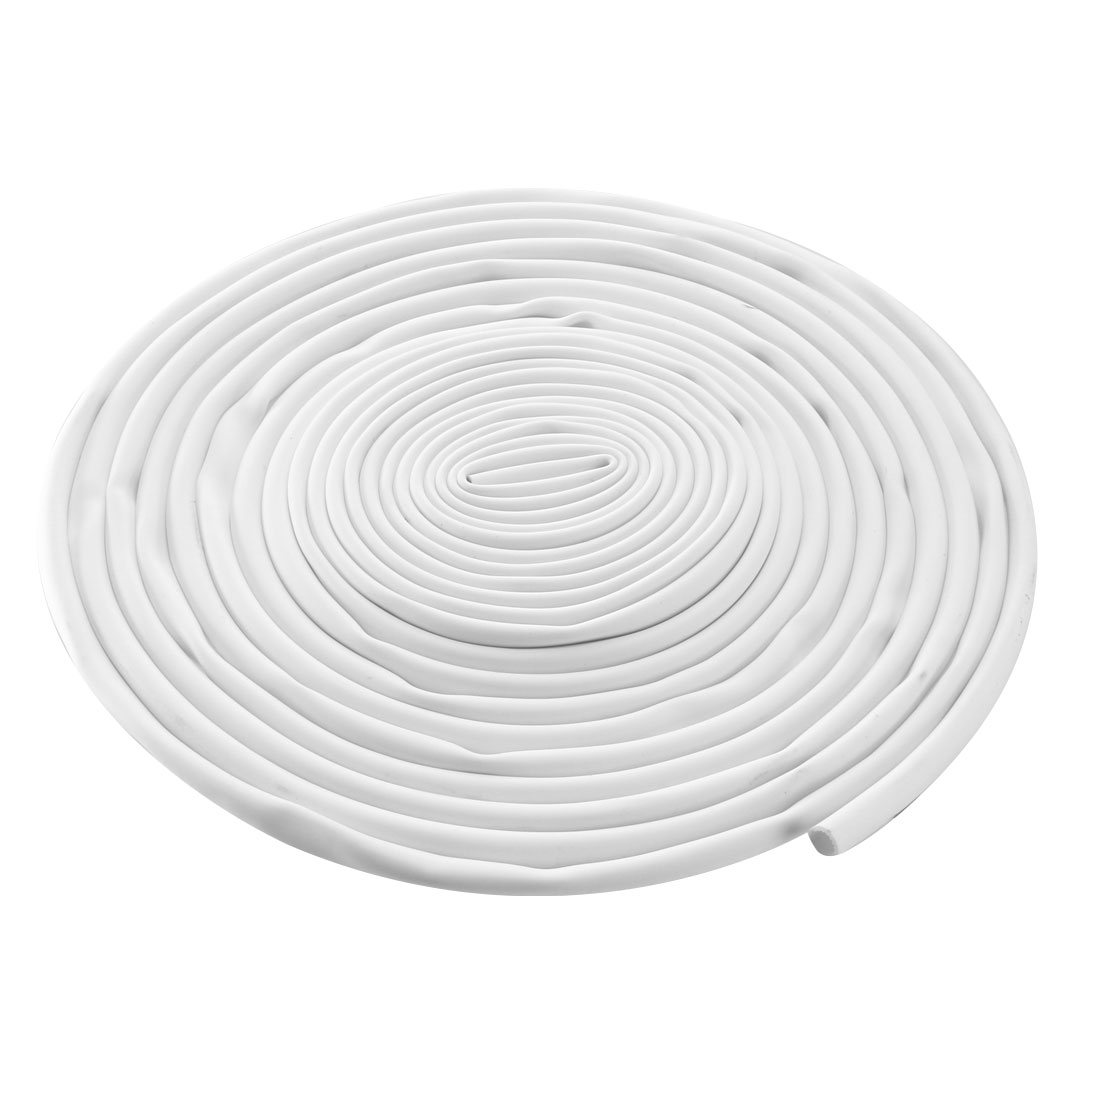 uxcell Protective PVC Marking Tube Sleeve Sleeving 3mm x 5m for Cable Wire